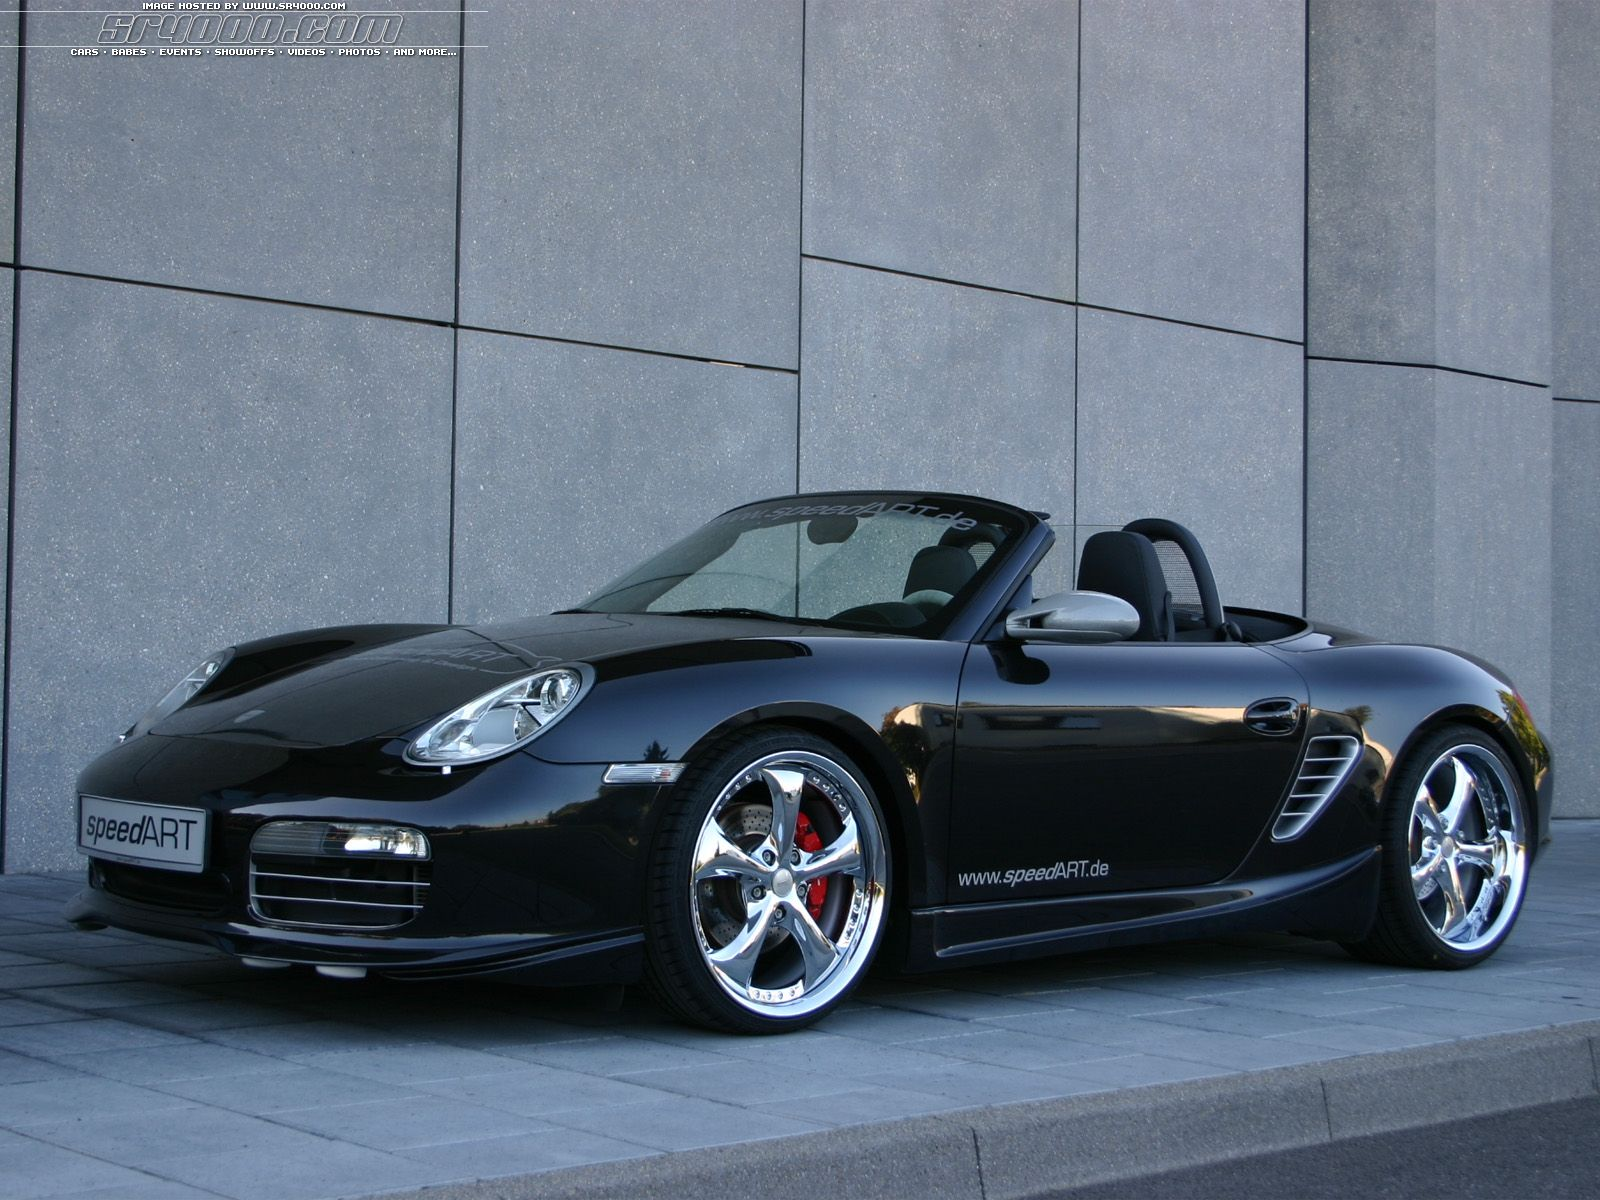 Porsche boxter photo - 4